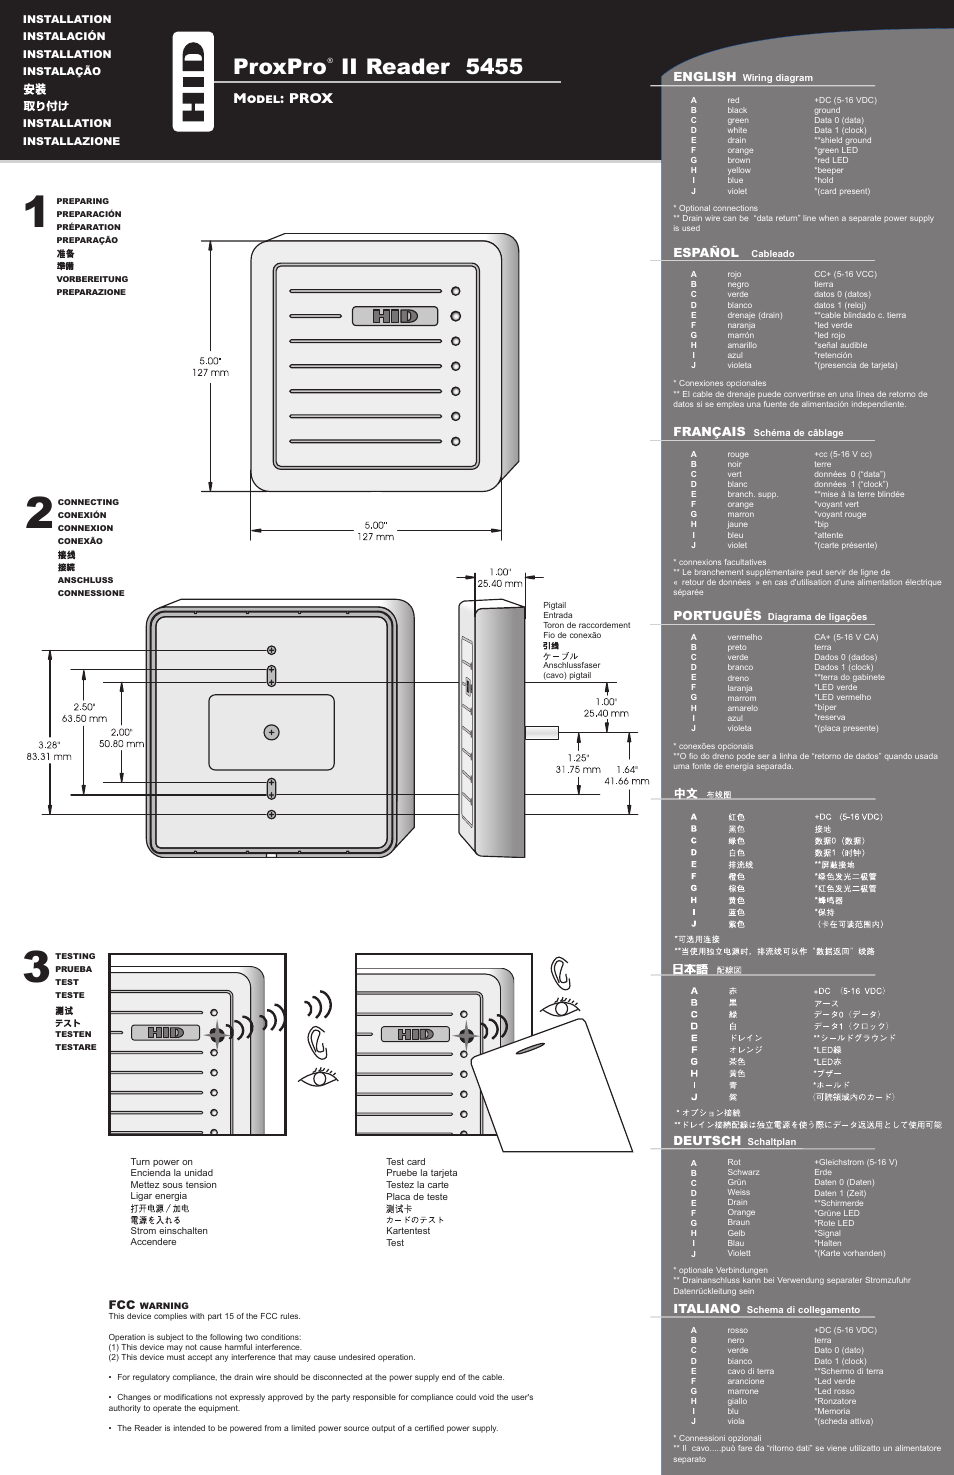 hid proxpro ii installation guide page1?resize=665%2C1028 sophisticated usb 2 0 male to male wiring diagram gallery wiring usb male to male wiring diagram at arjmand.co